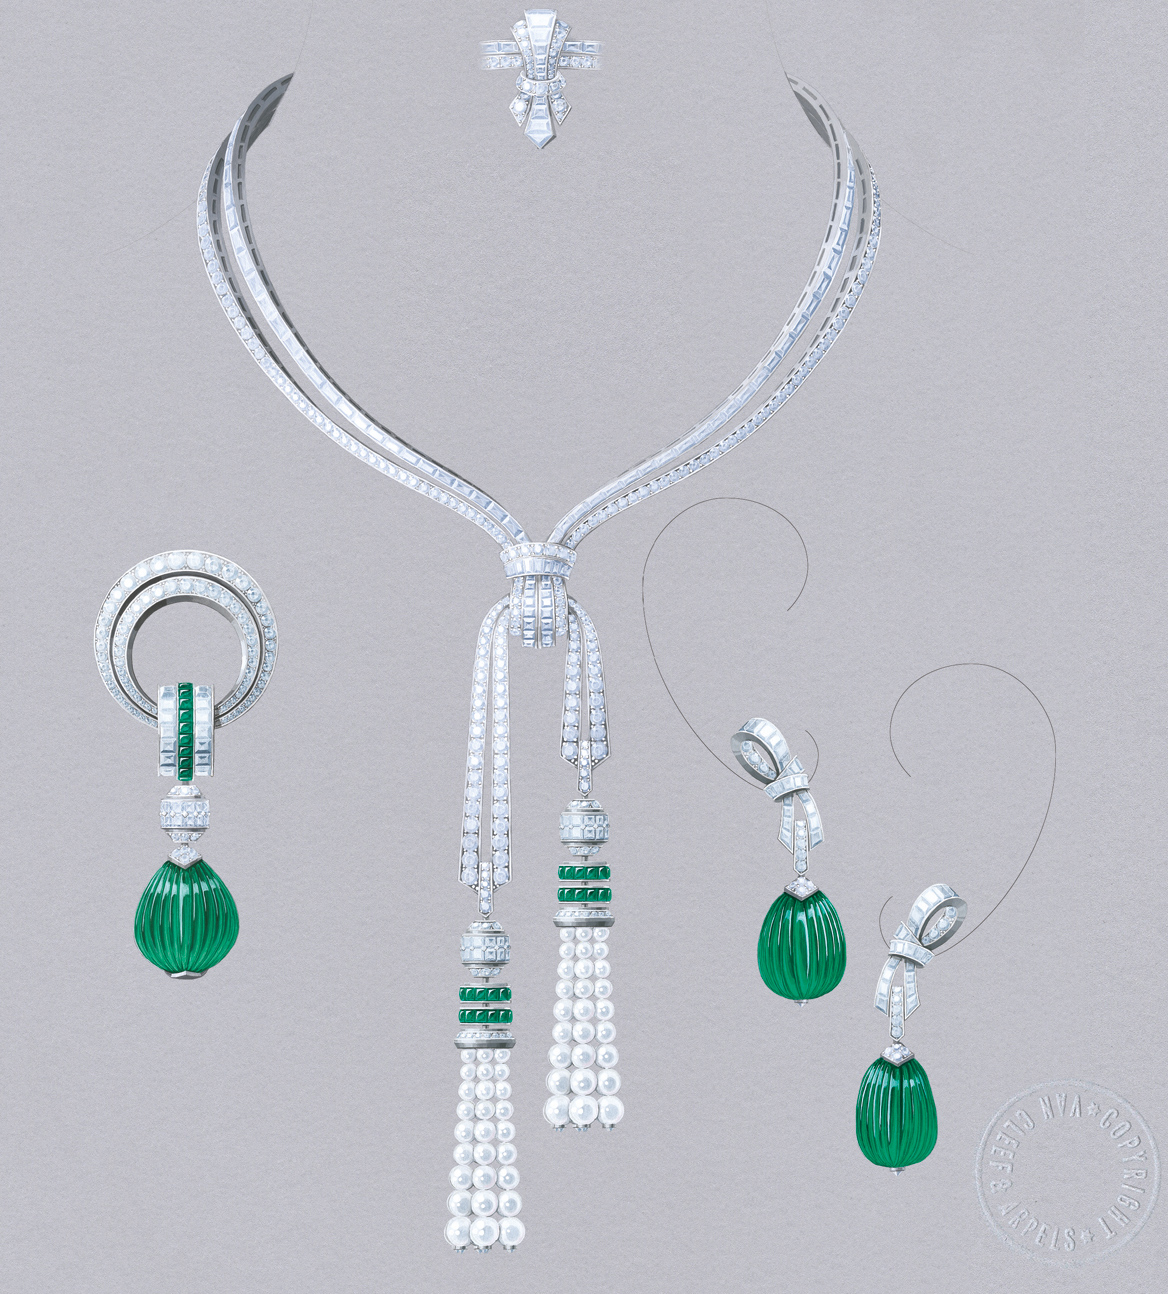 Van Cleef&Arpels Grand Opus set. White gold, round, baguette-cut and princess-cut diamonds, buff-topped square-cut emeralds, white cultured pearls, 3 carved emeralds for 127.88 carats (Colombia). Transformable necklace, earrings and clip with detachable pendants.